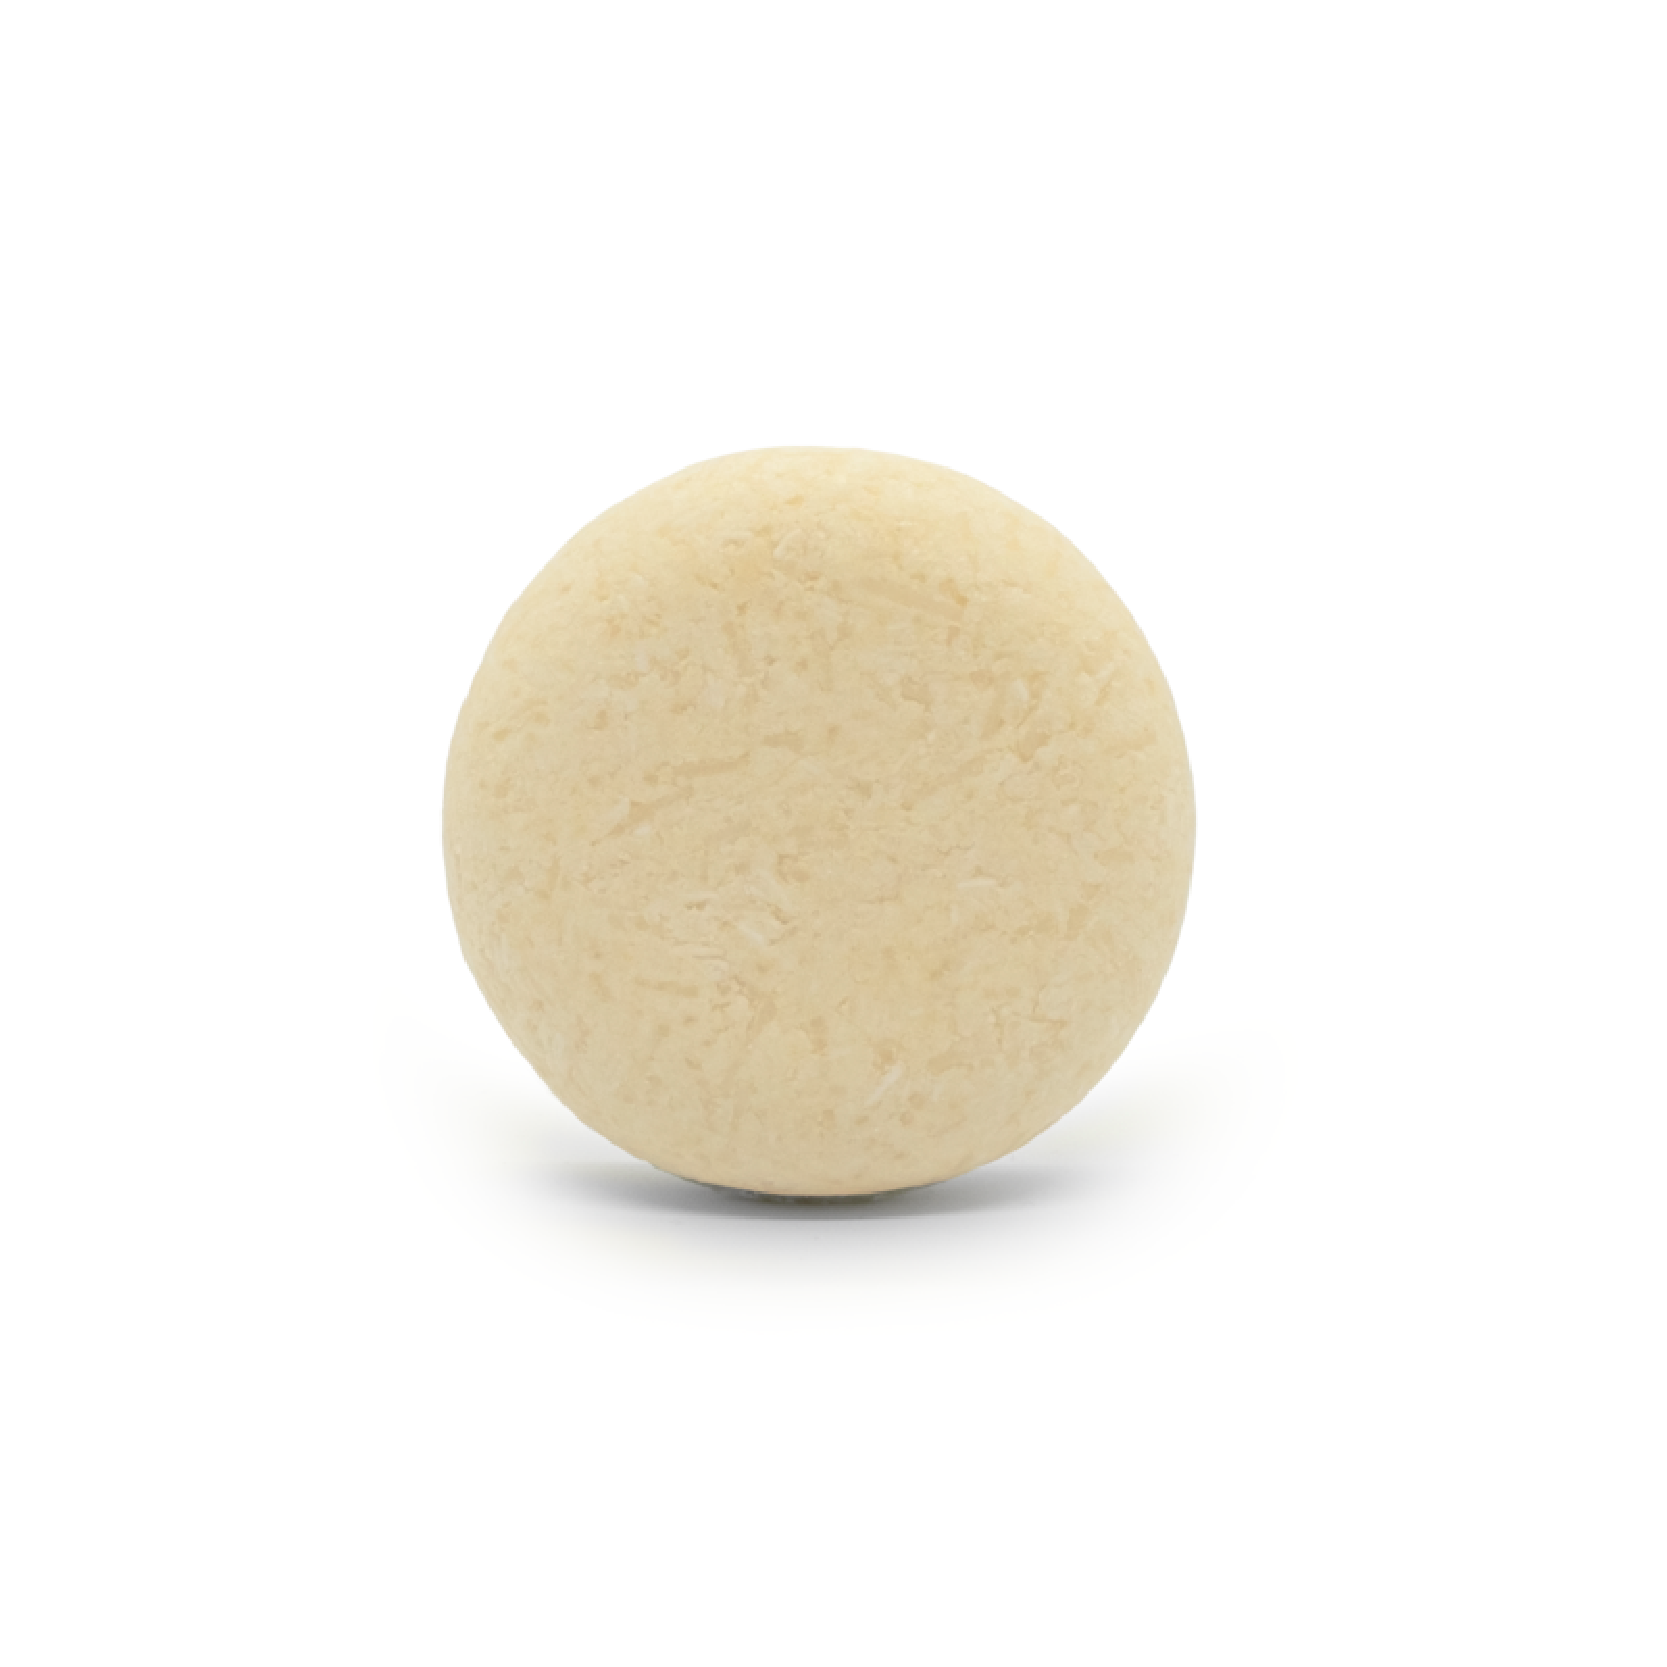 Dry / Curly Hair Shampoo Bar - Good Juju